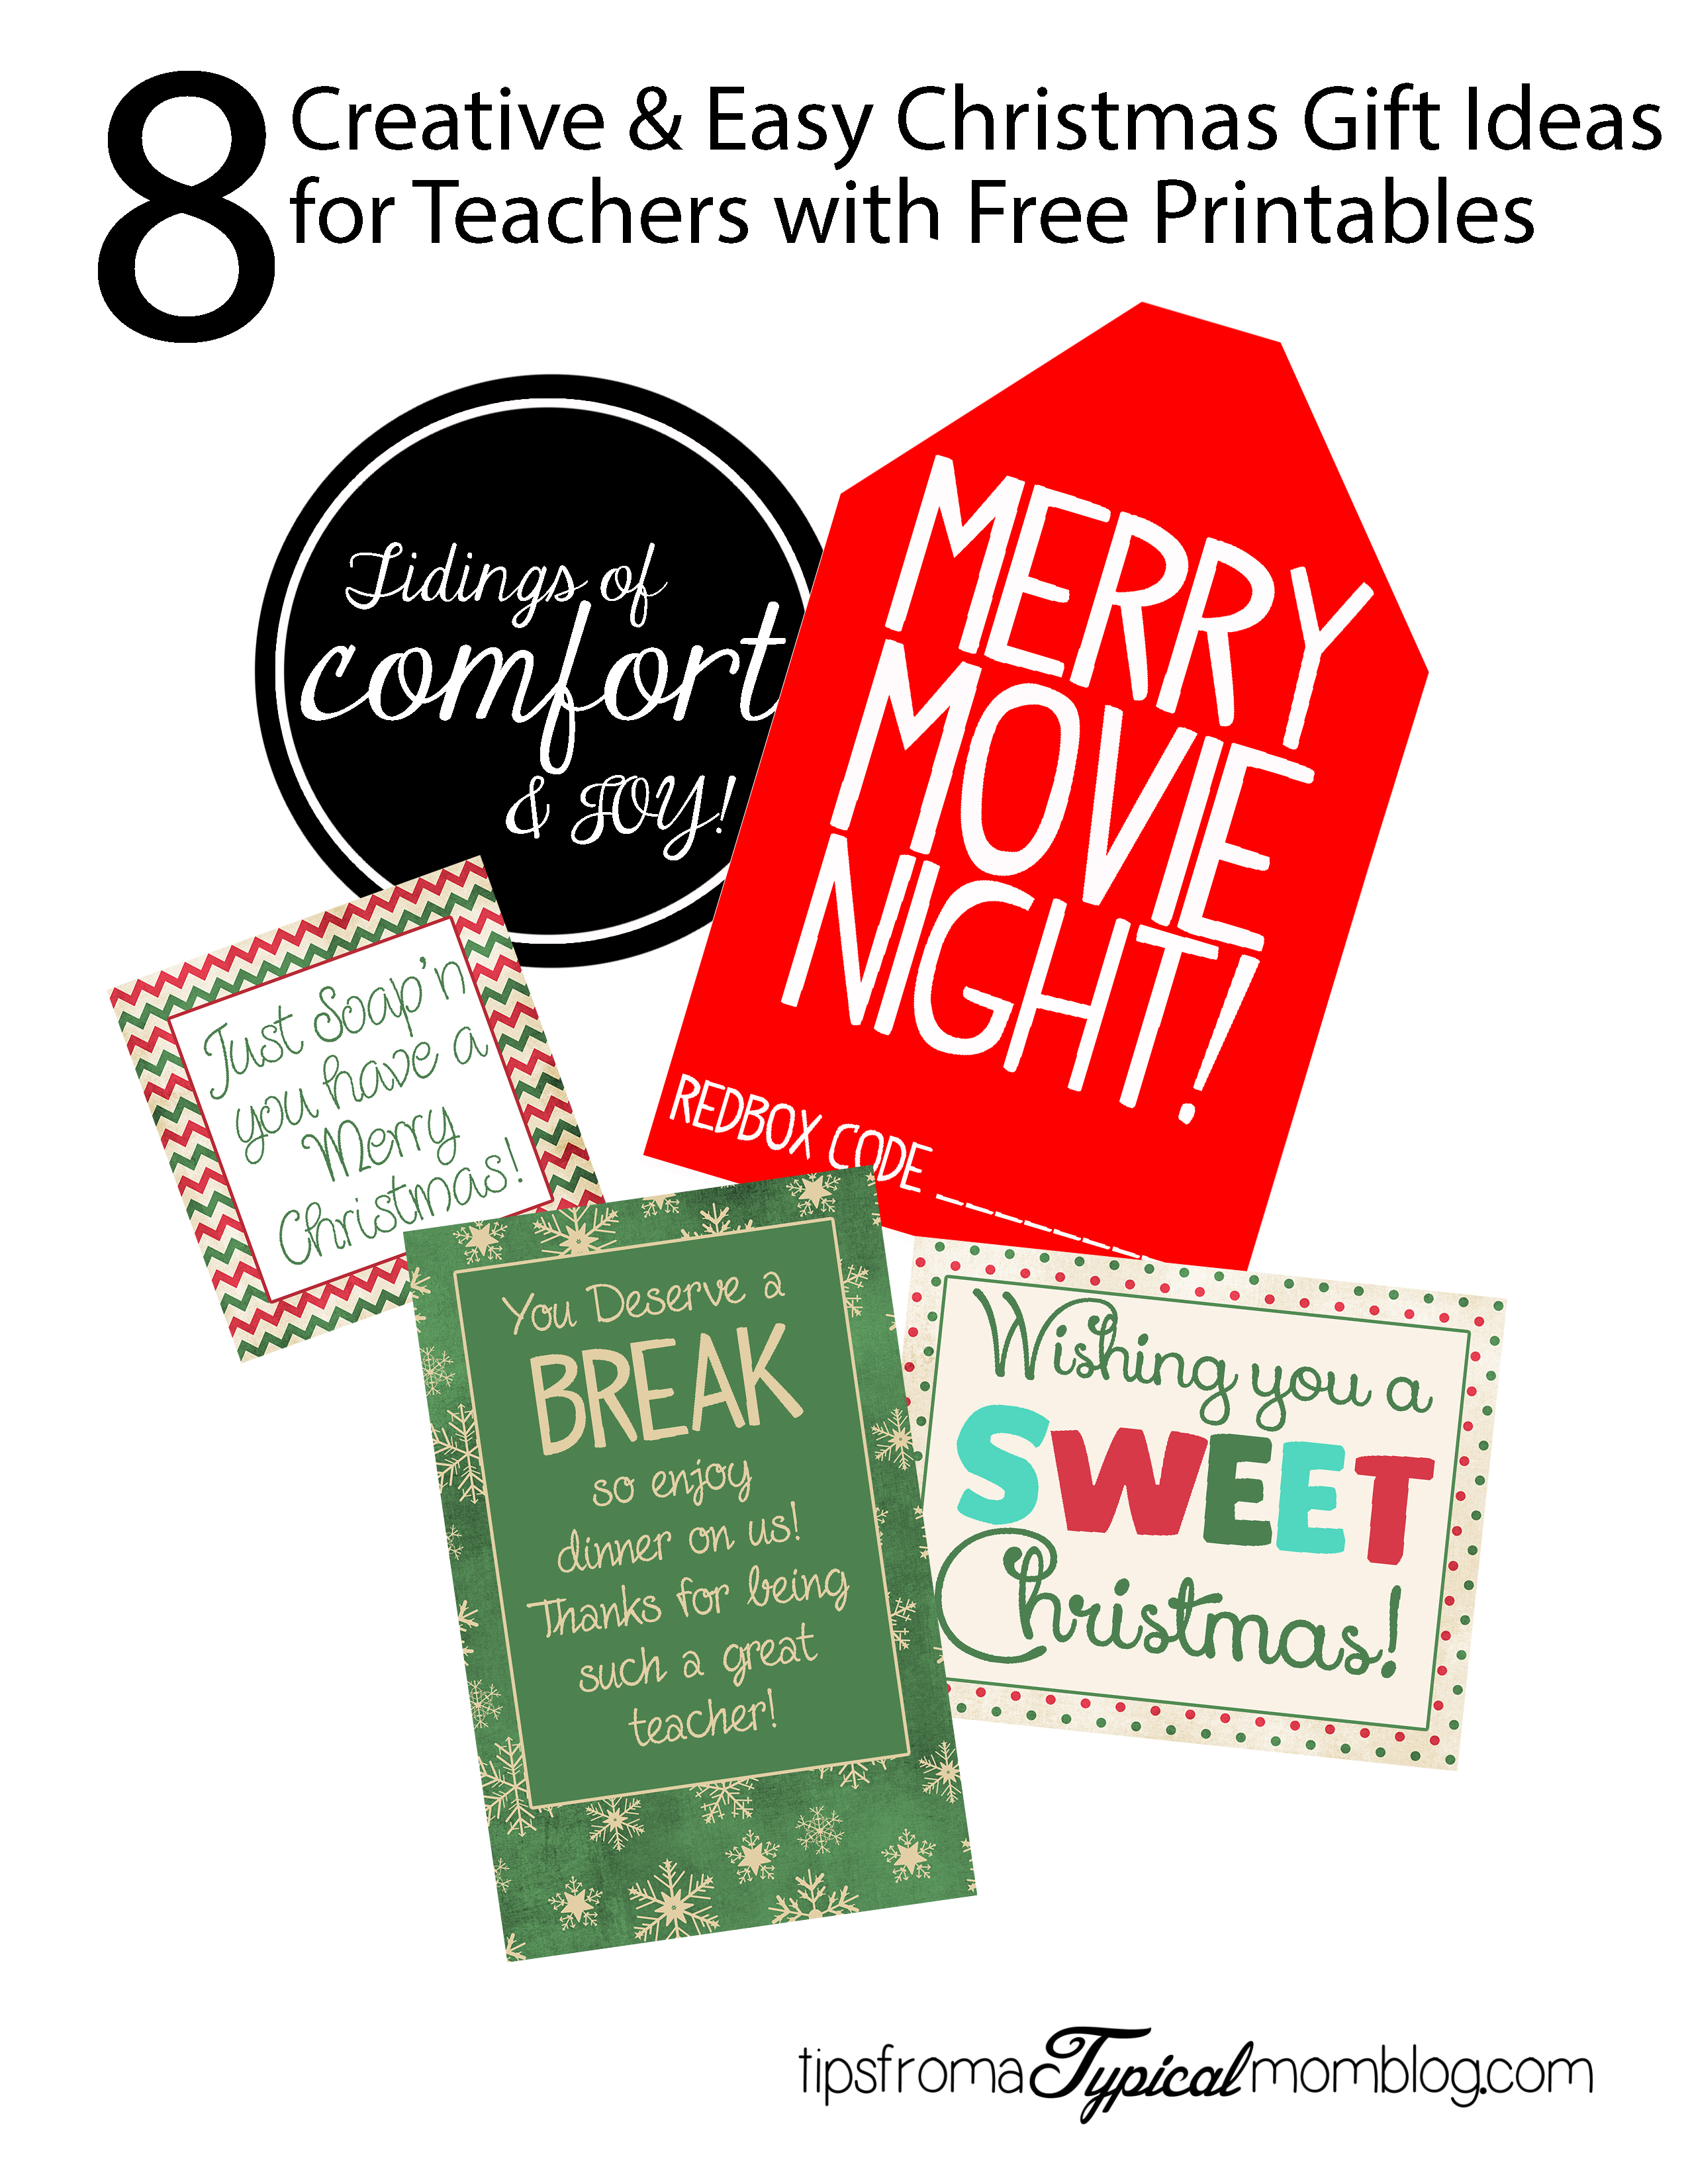 image relating to Redbox Printable Tags identified as 8 Easy and Uncomplicated Instructor Xmas Present Guidelines with Printable